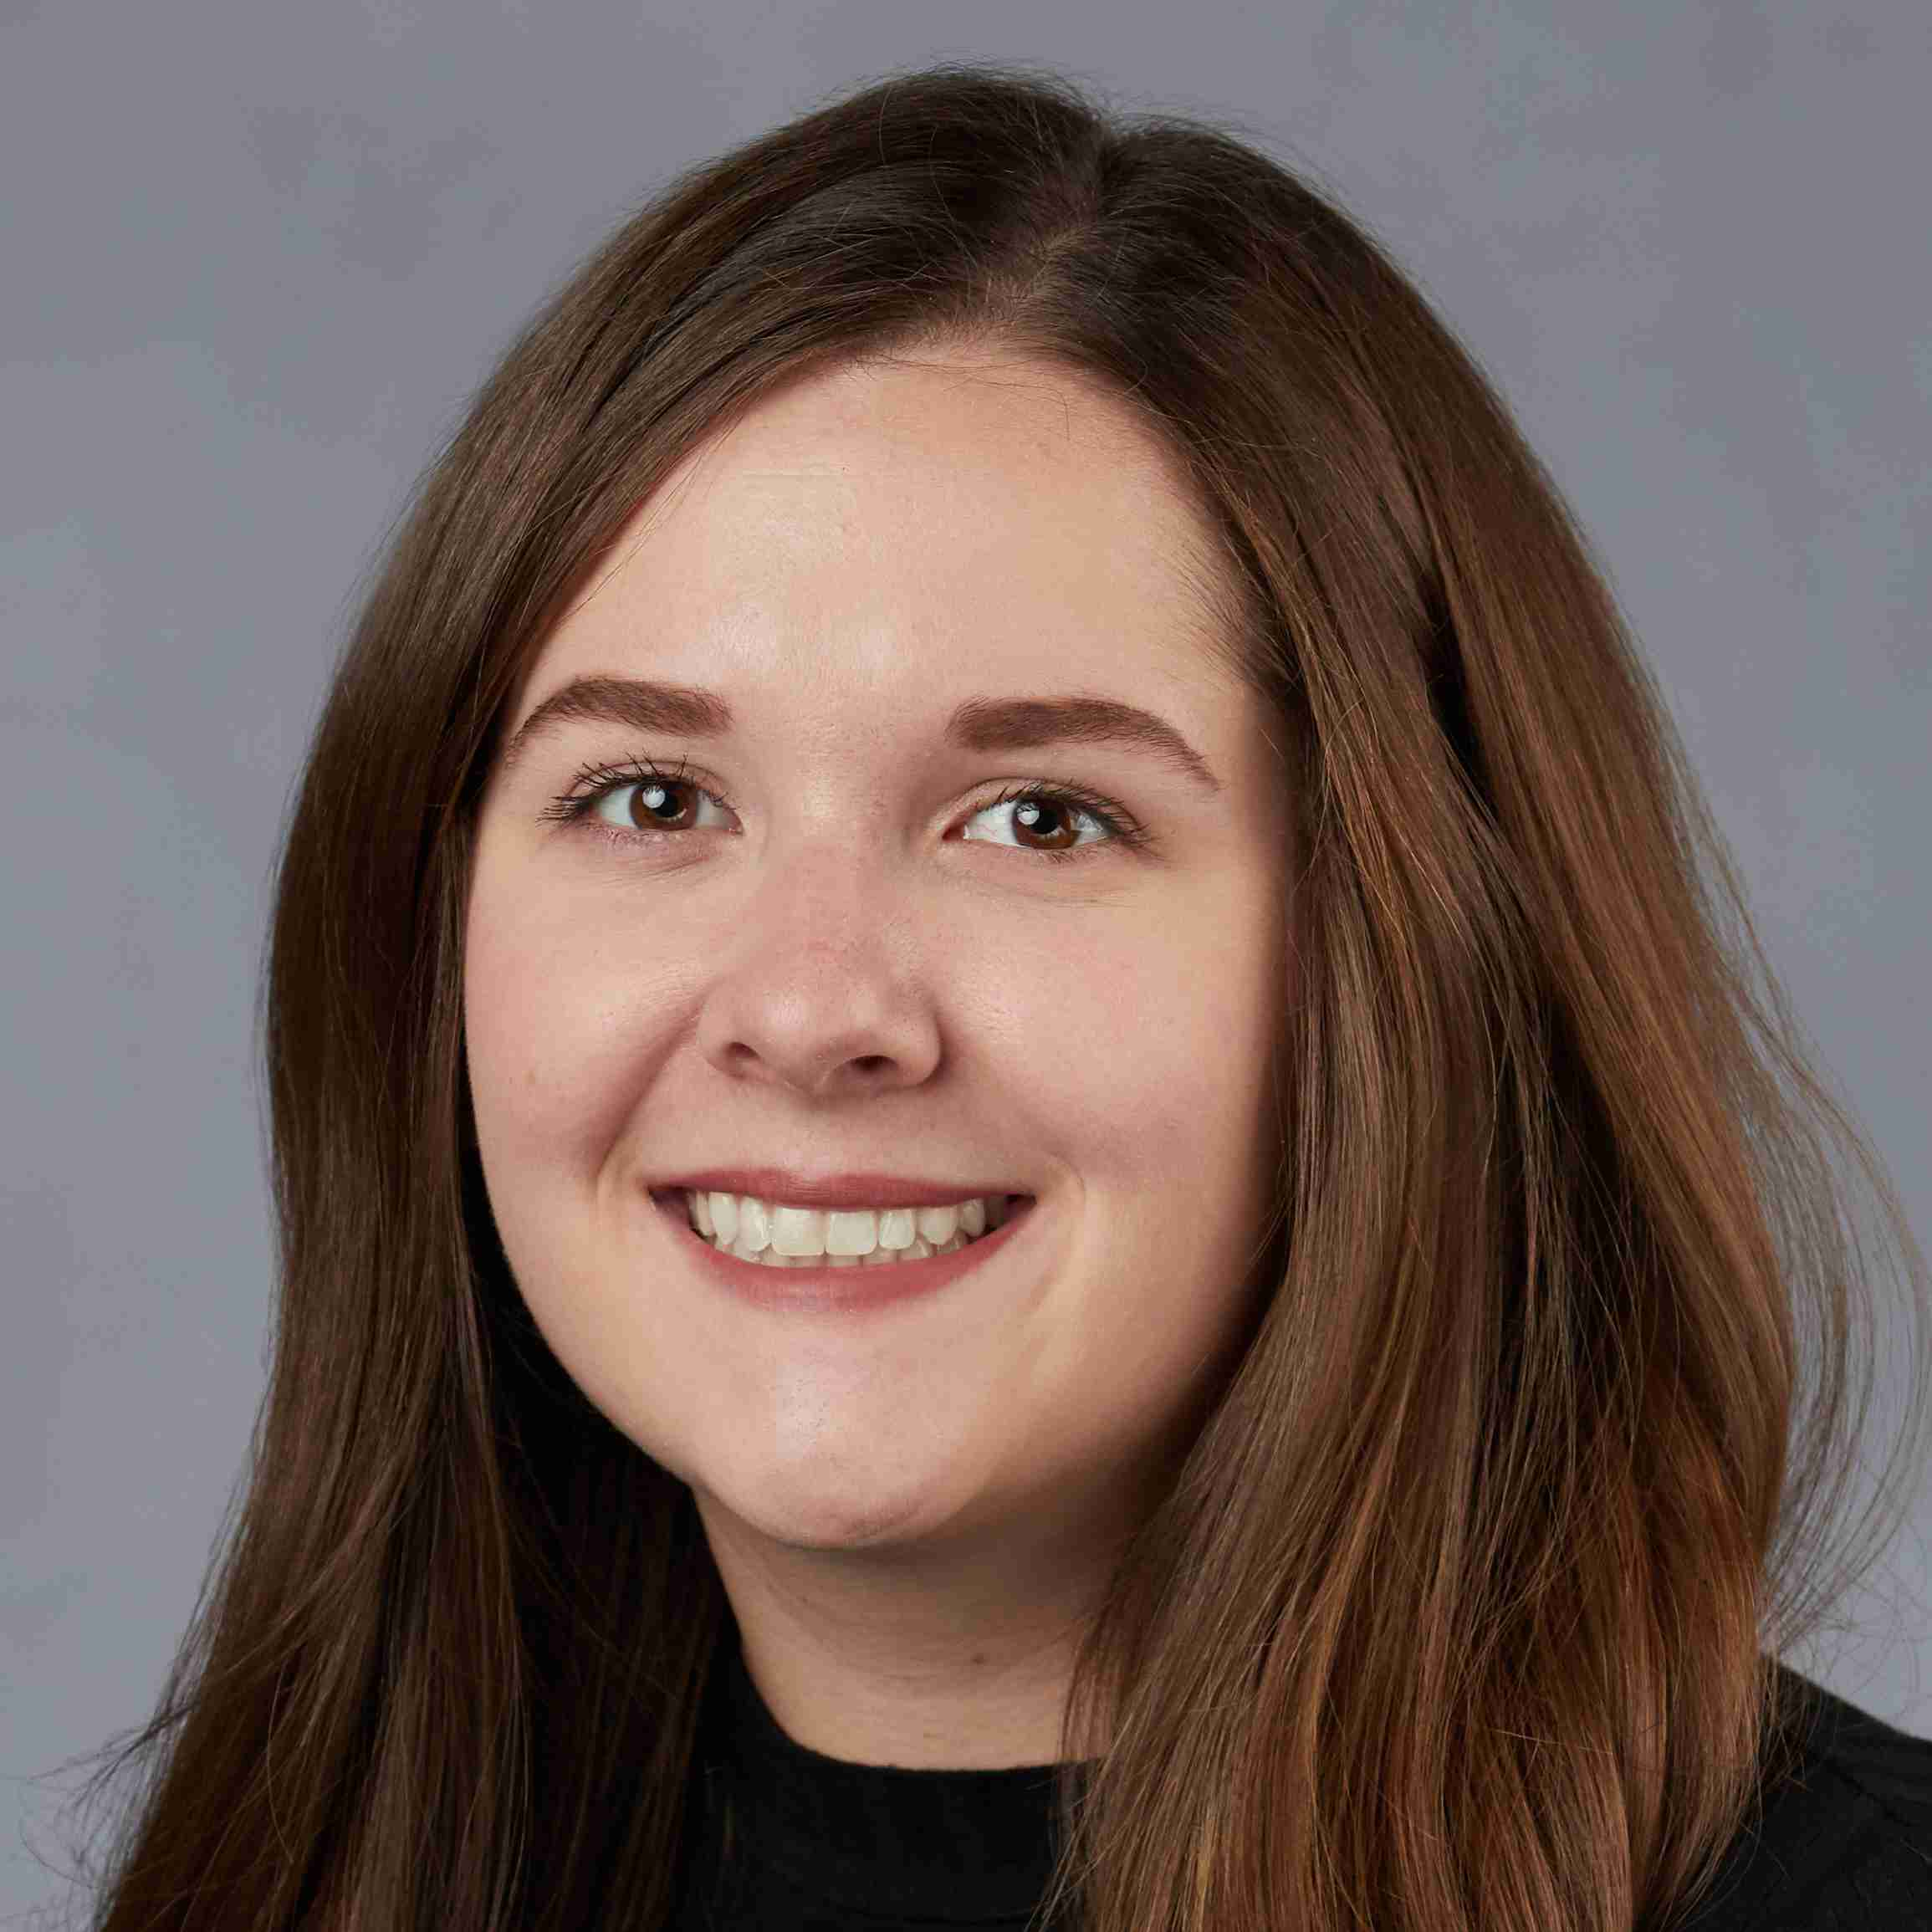 Ember SmithStudent ResearcherHeadshots: The Lincy Institute & Brookings Mountain WestOctober 18, 2019(Nicholas Endo/UNLV Photo Services)